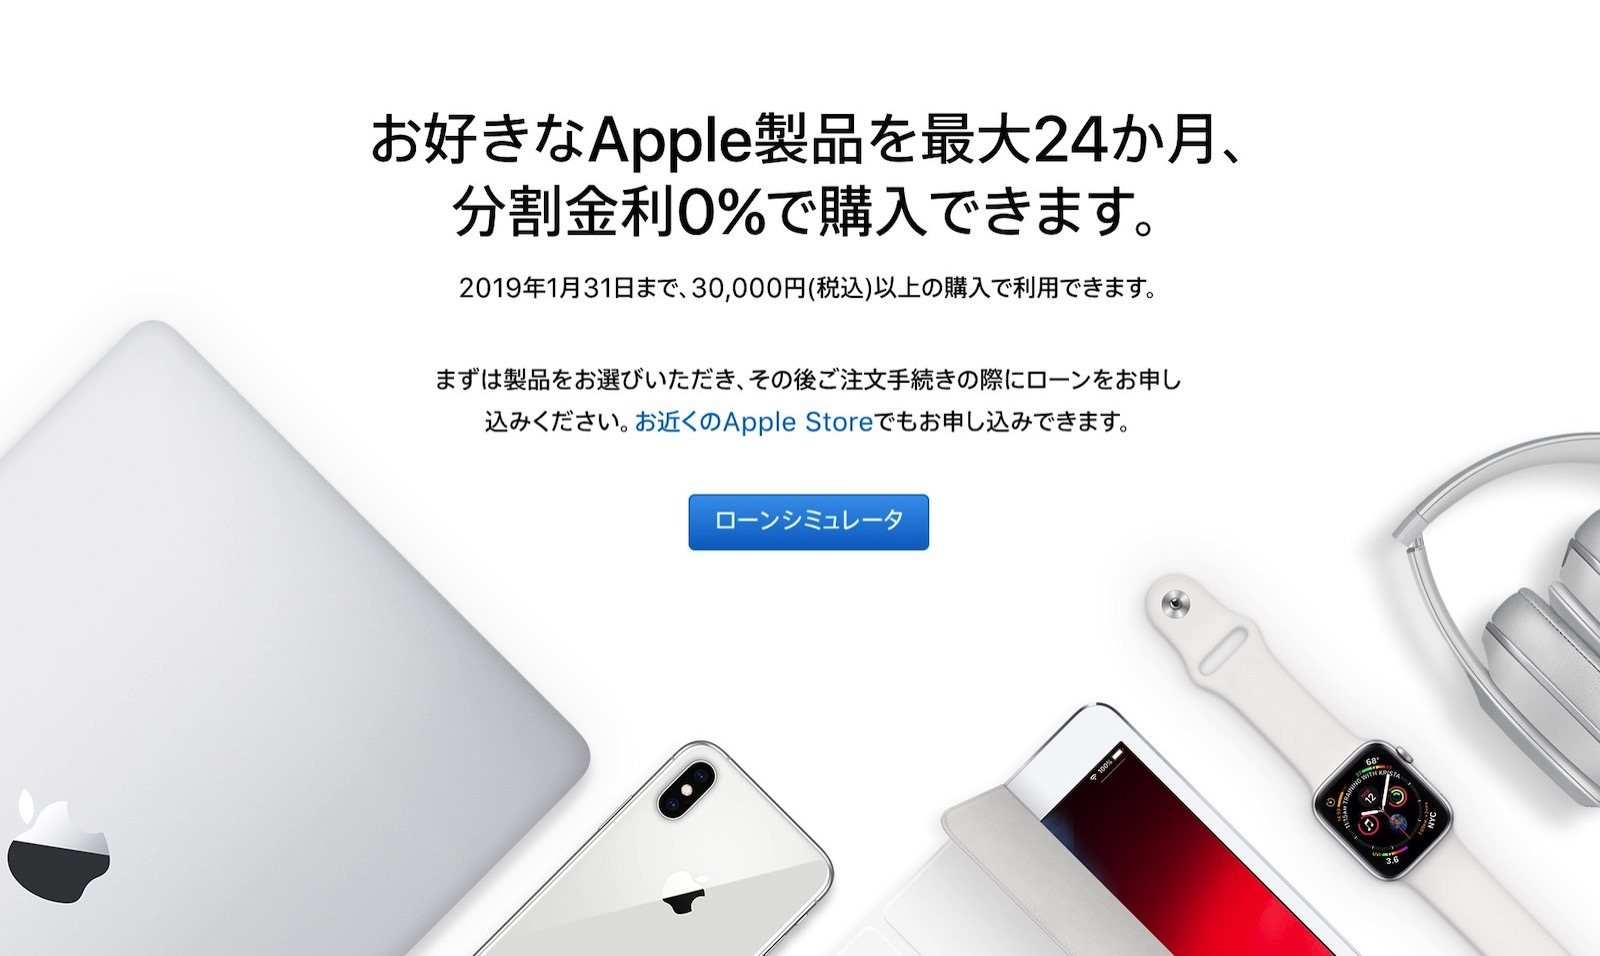 Apple Financing 20190131